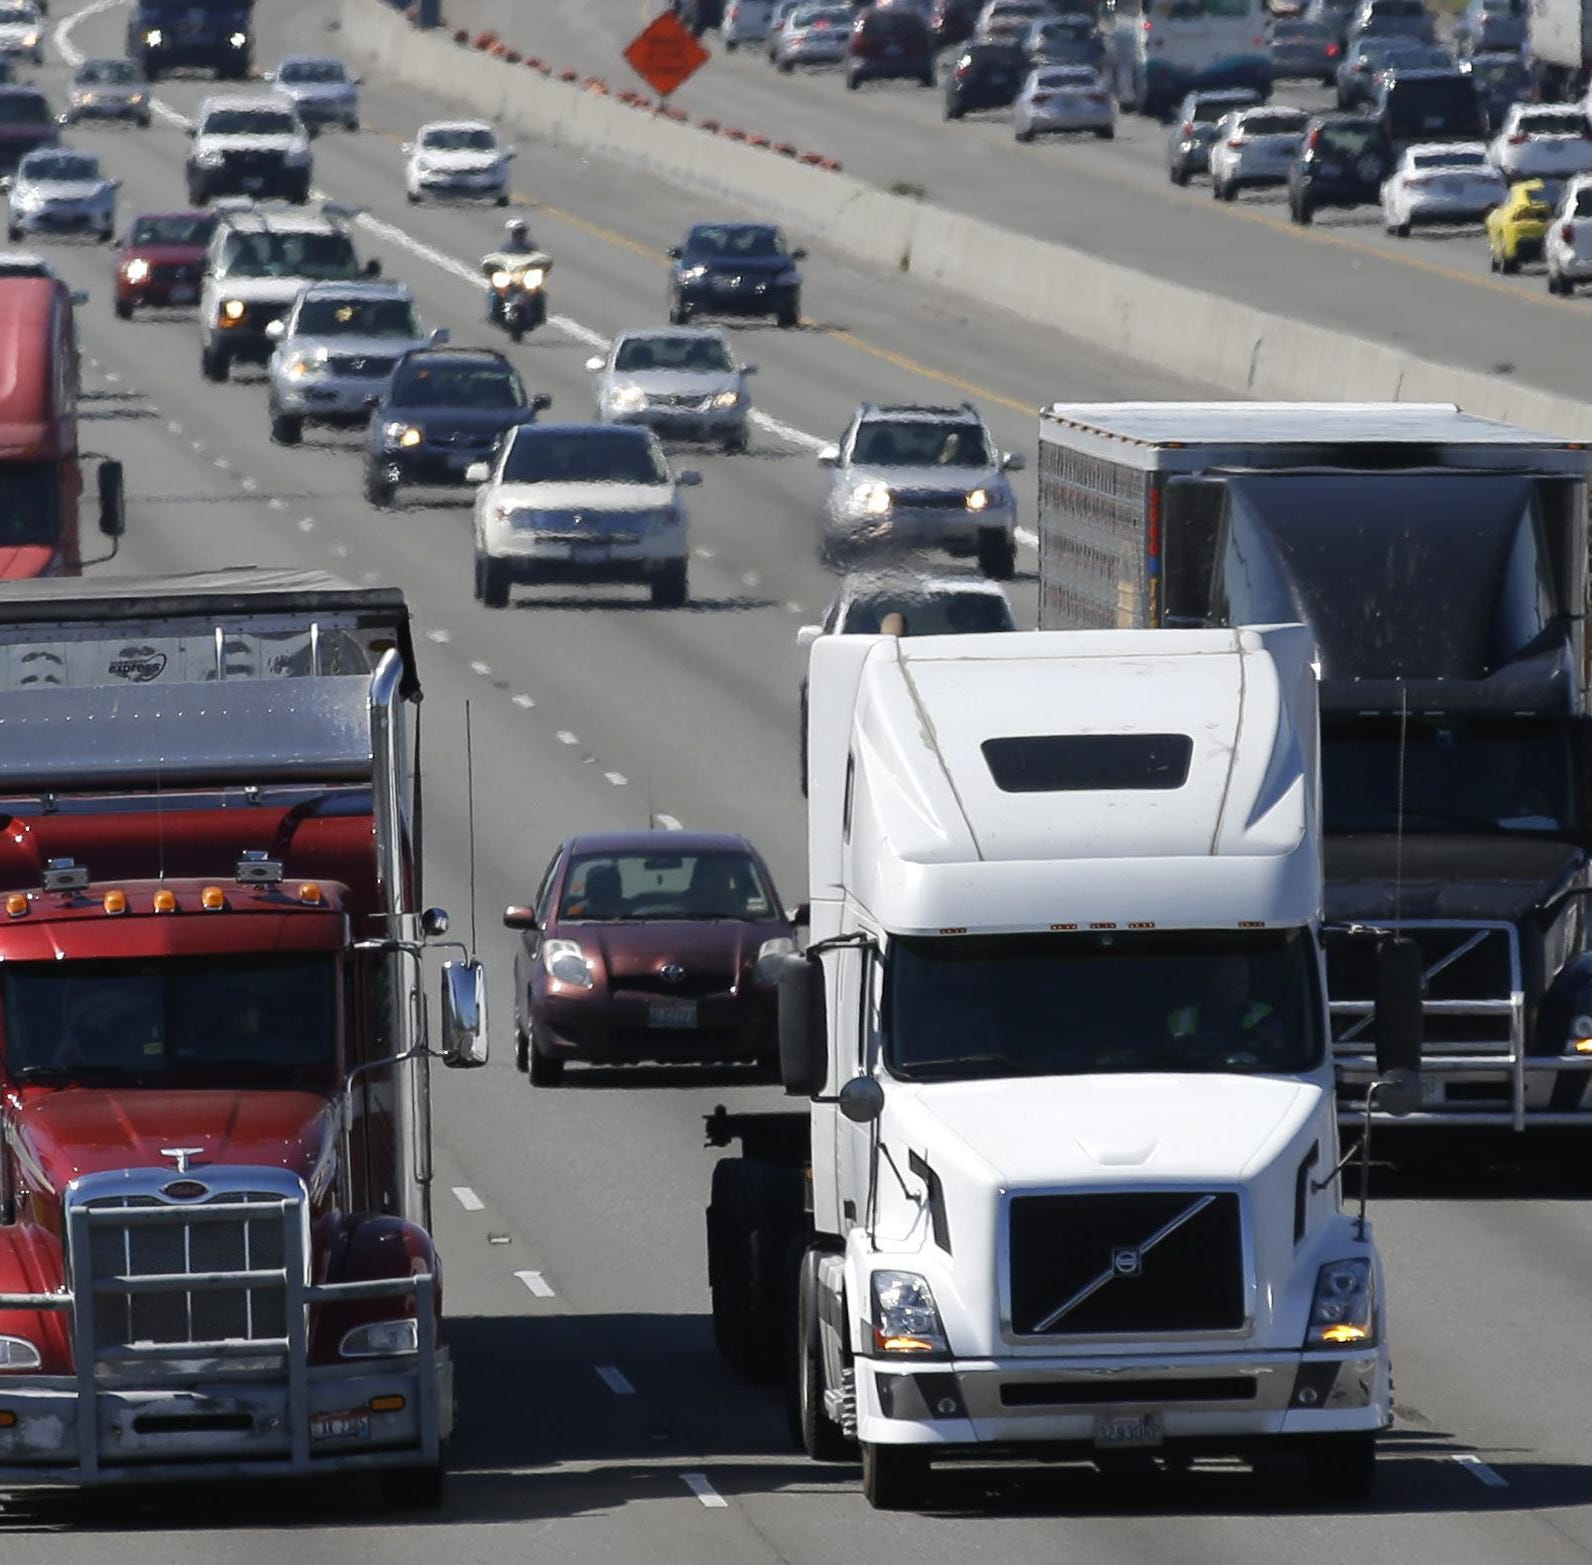 Trucker concerns: Those who drive for living oppose I-41 speed limit reduction